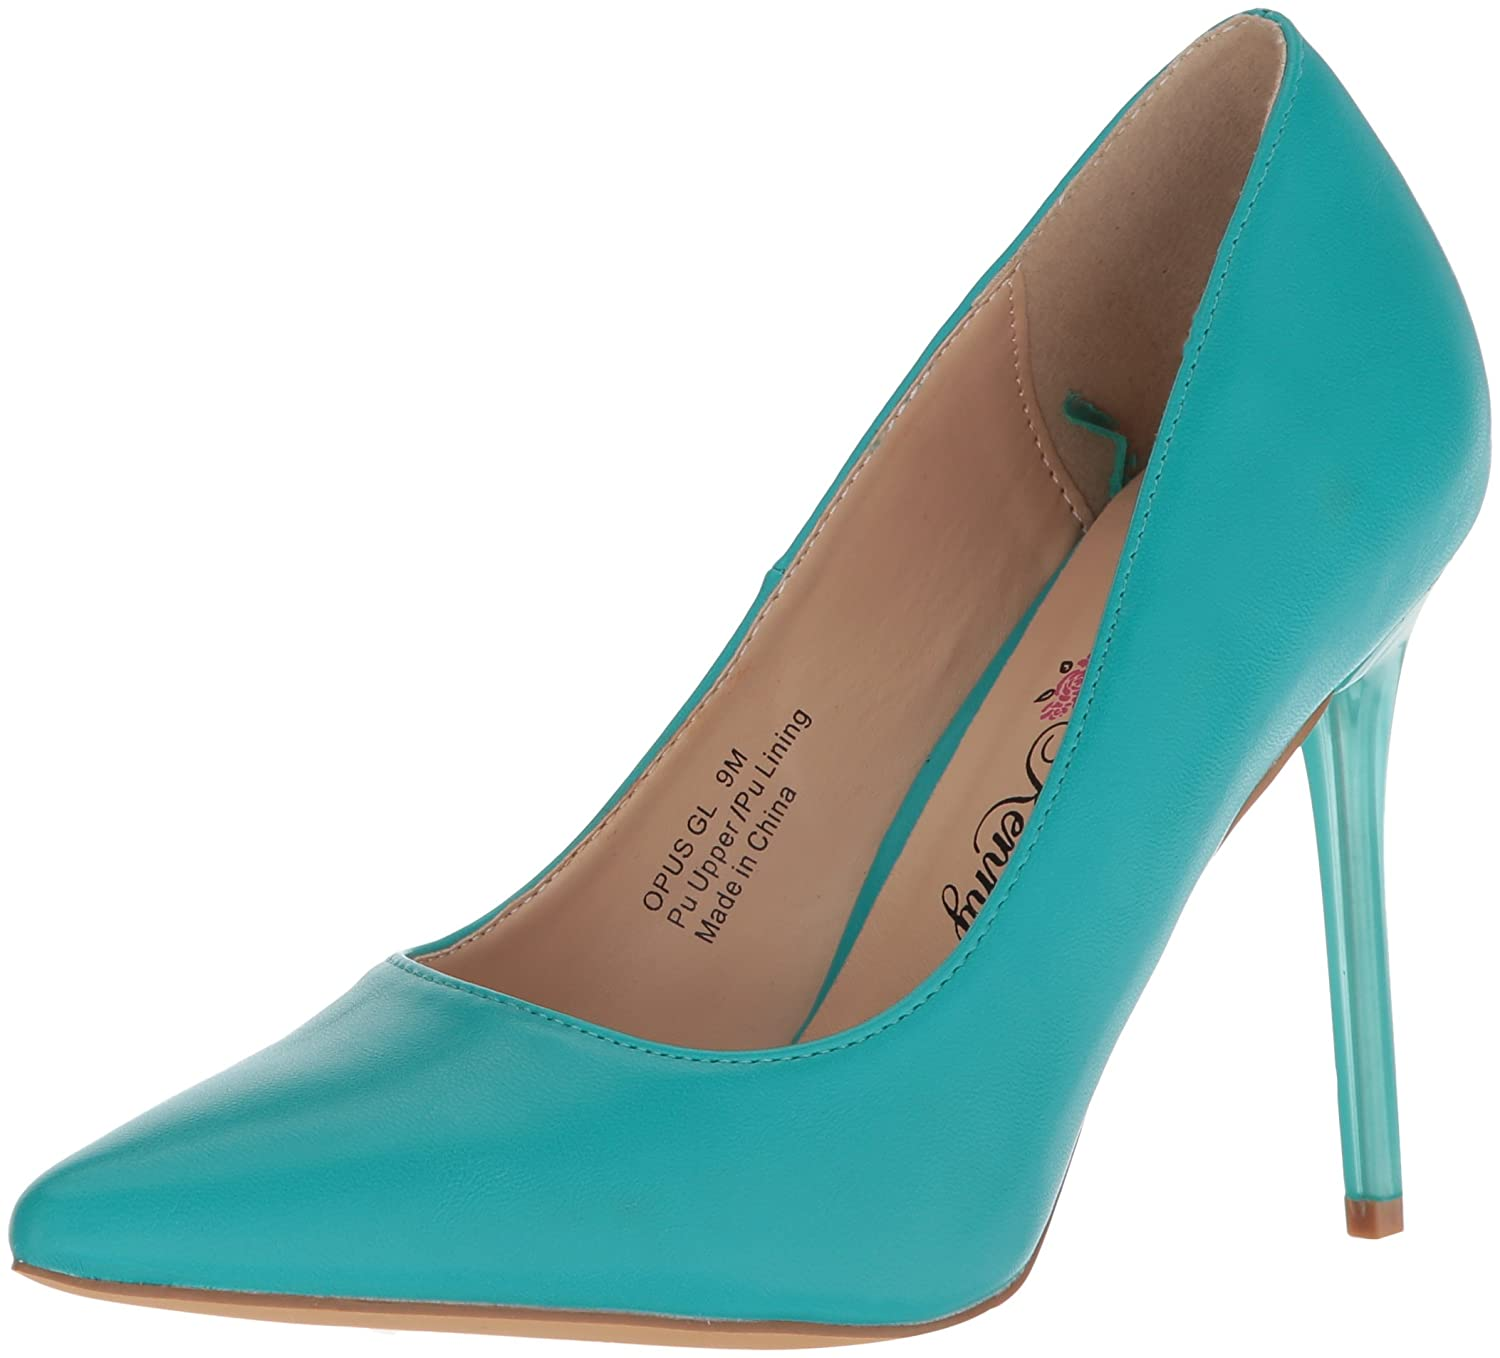 Penny Loves Kenny Women's Opus Gl Pump B076FDW4VM 6.5 B(M) US|Turquoise